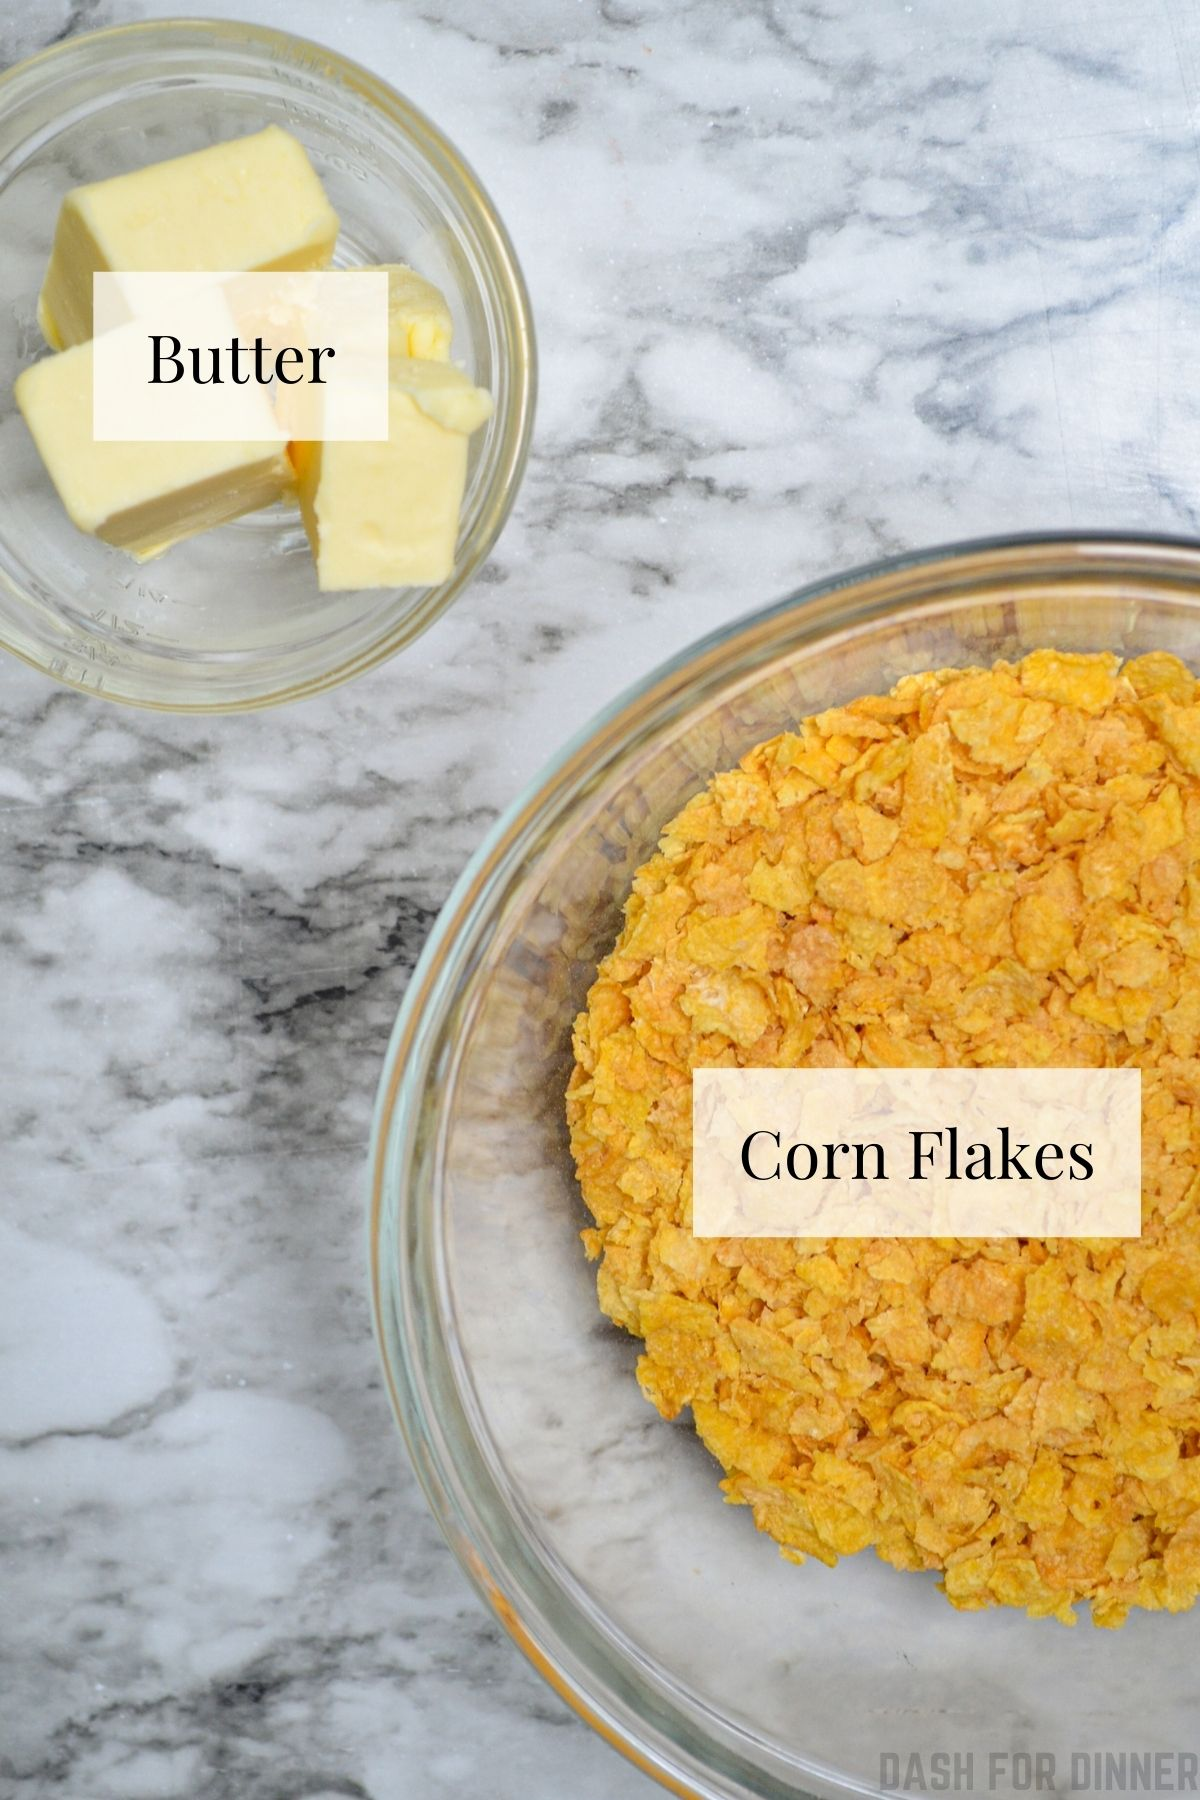 The ingredients needed to make a crunchy casserole topping: corn flakes and butter.